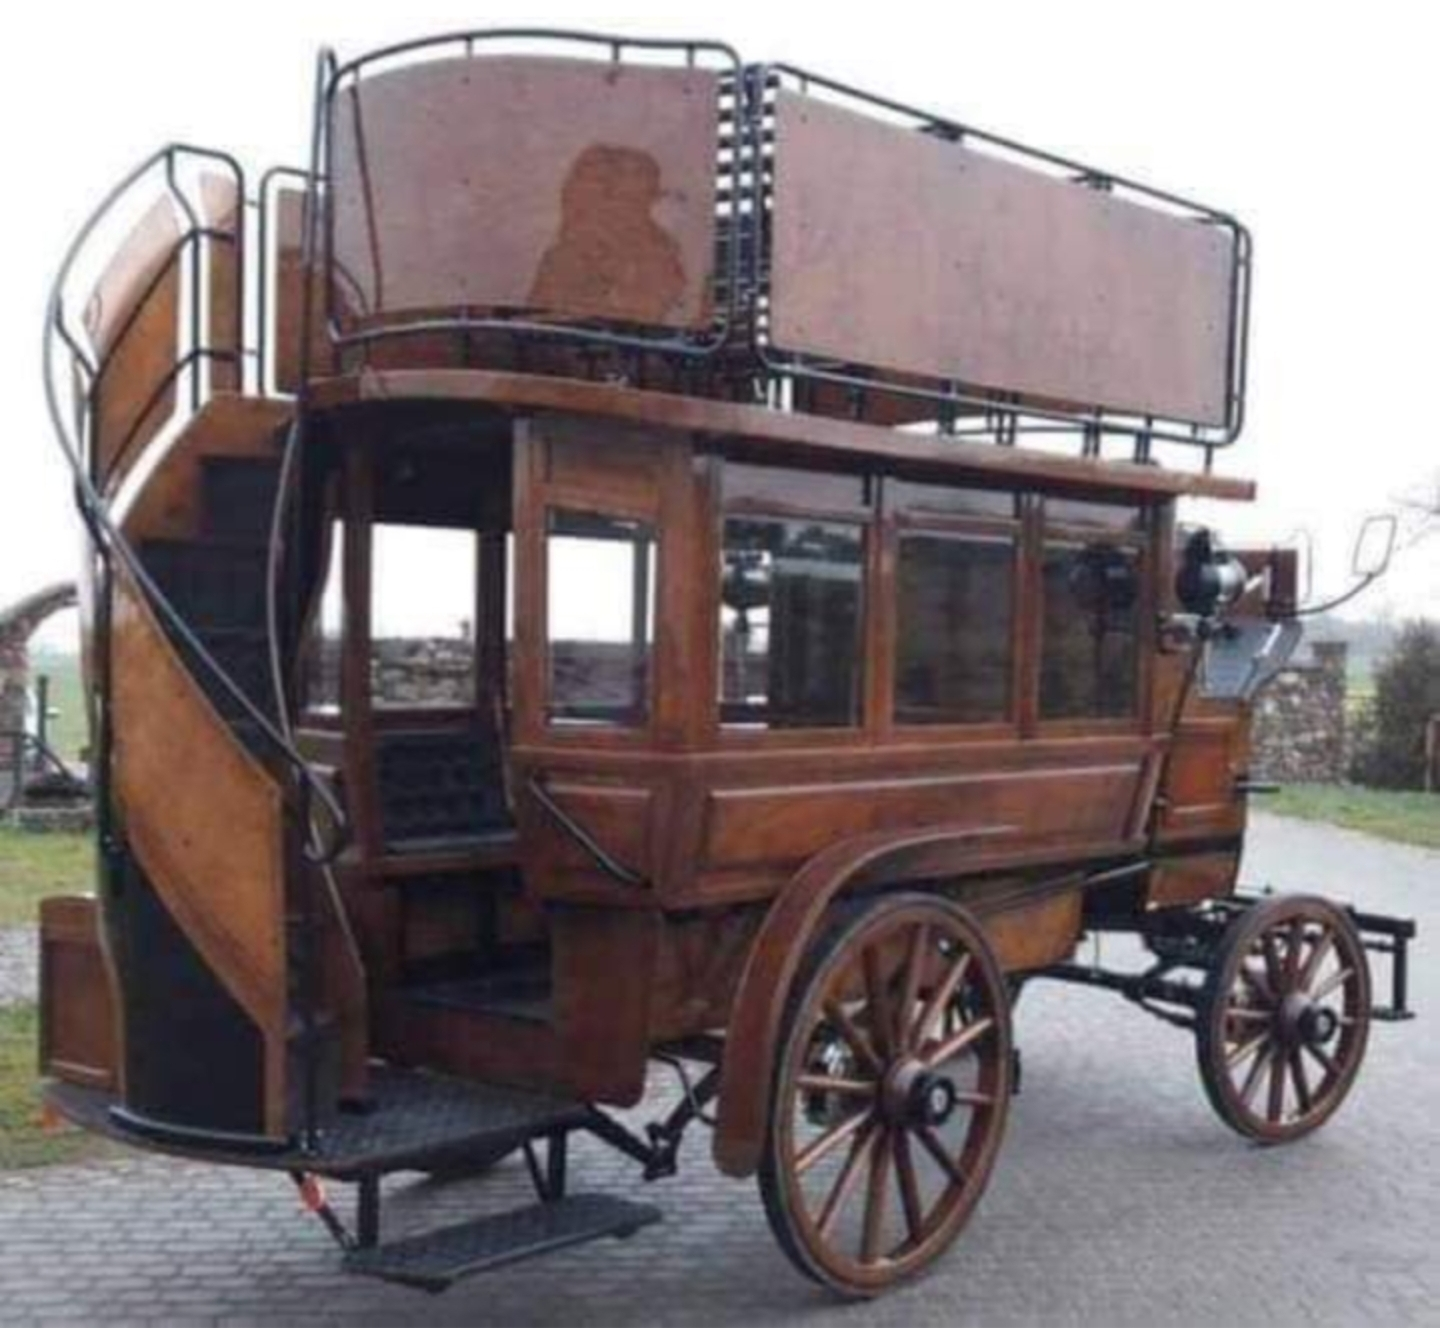 A horse-drawn bus from the 1890s